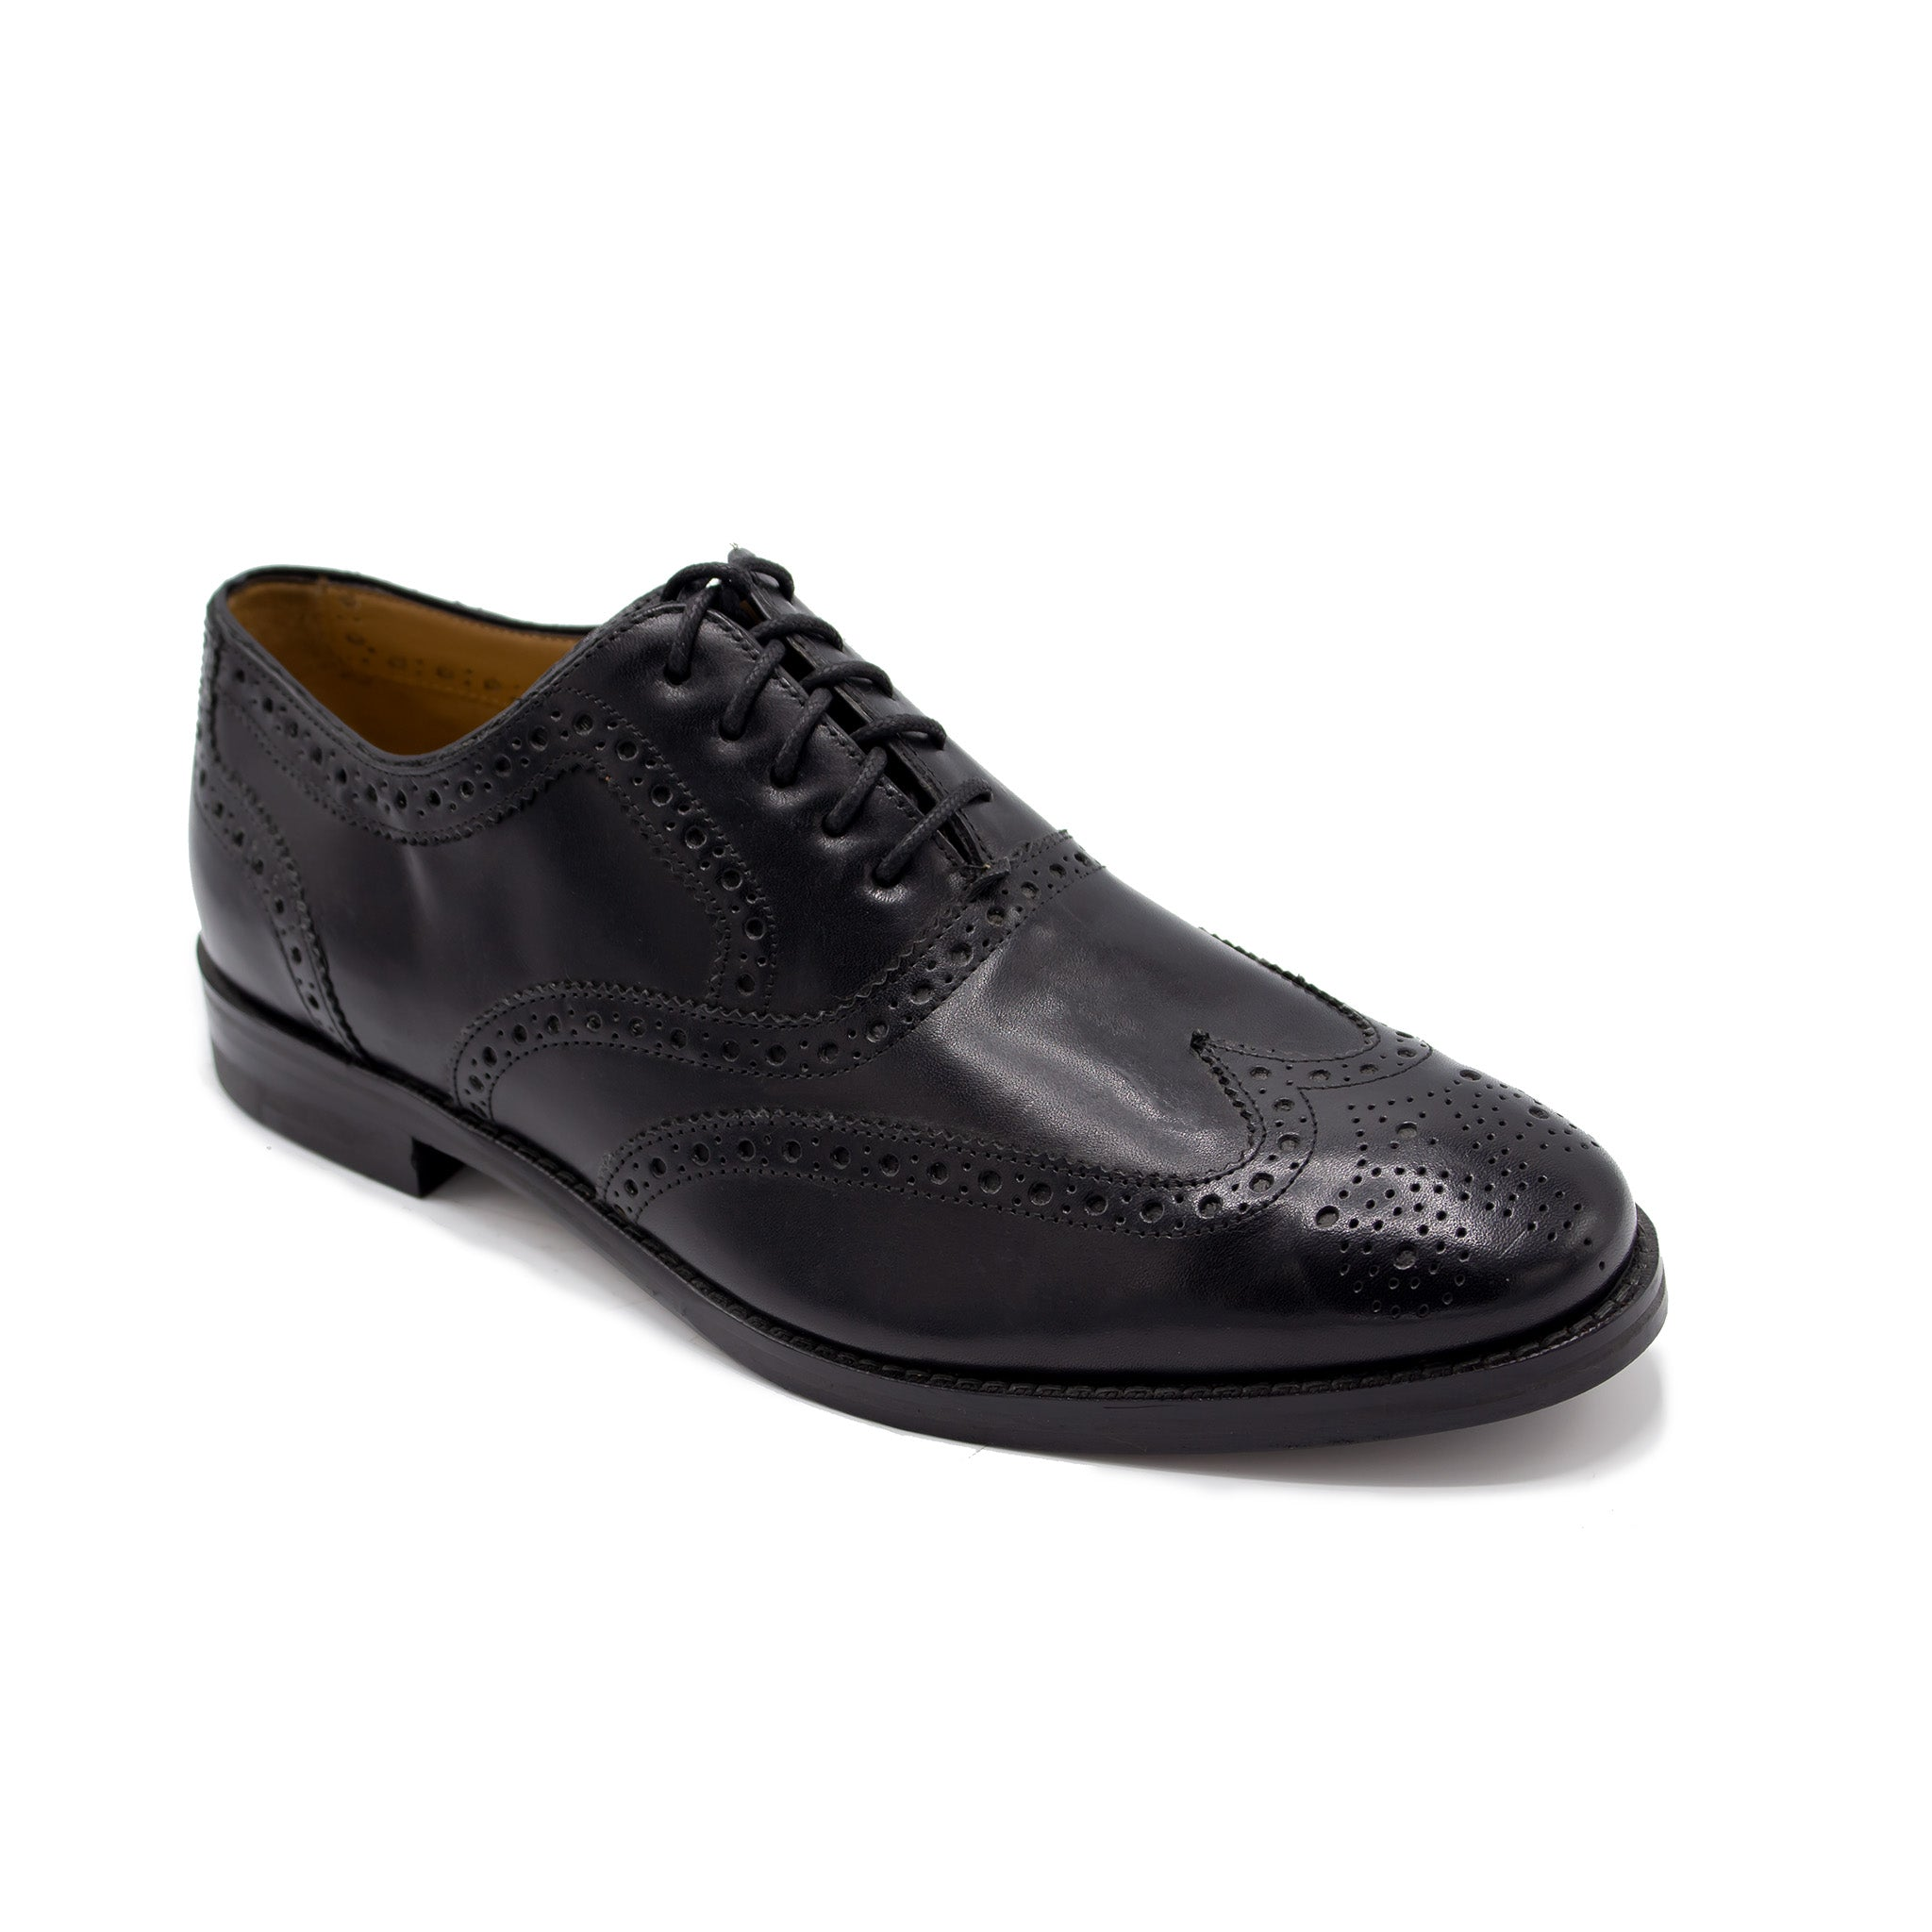 CAMBRIDGE WING OX BY COLE HAAN BLACK